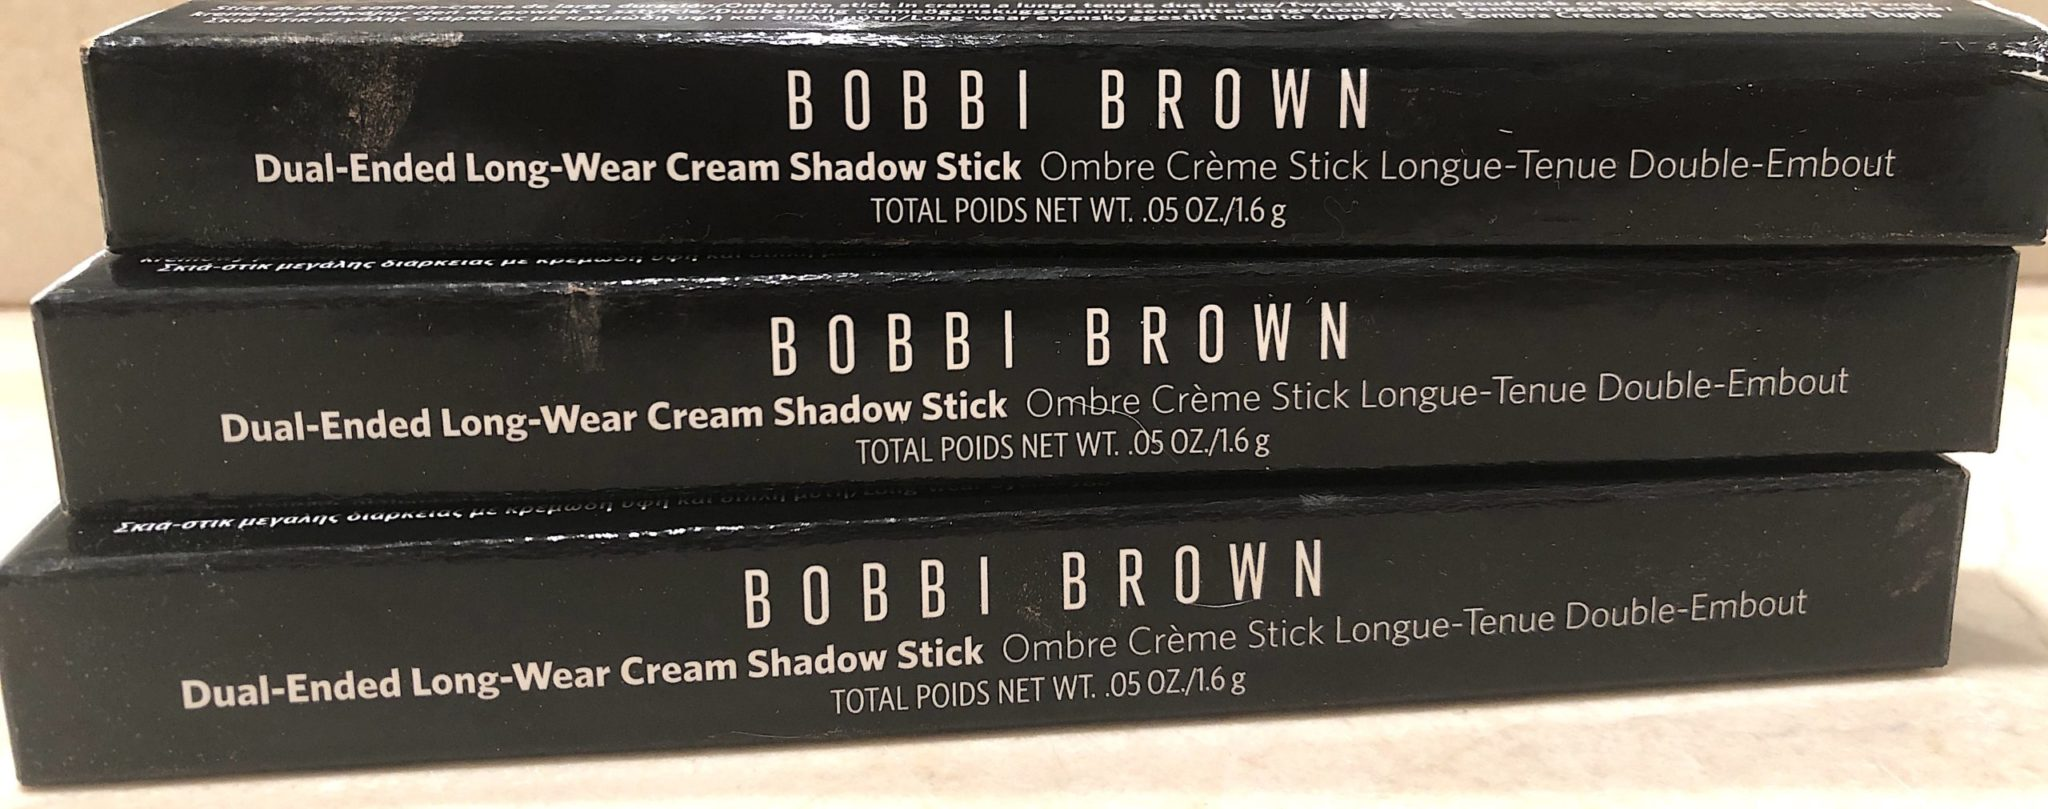 BOBBI BROWN OUTER BOX FOR DUAL-ENDED CREAM EYESHADOW STICKS